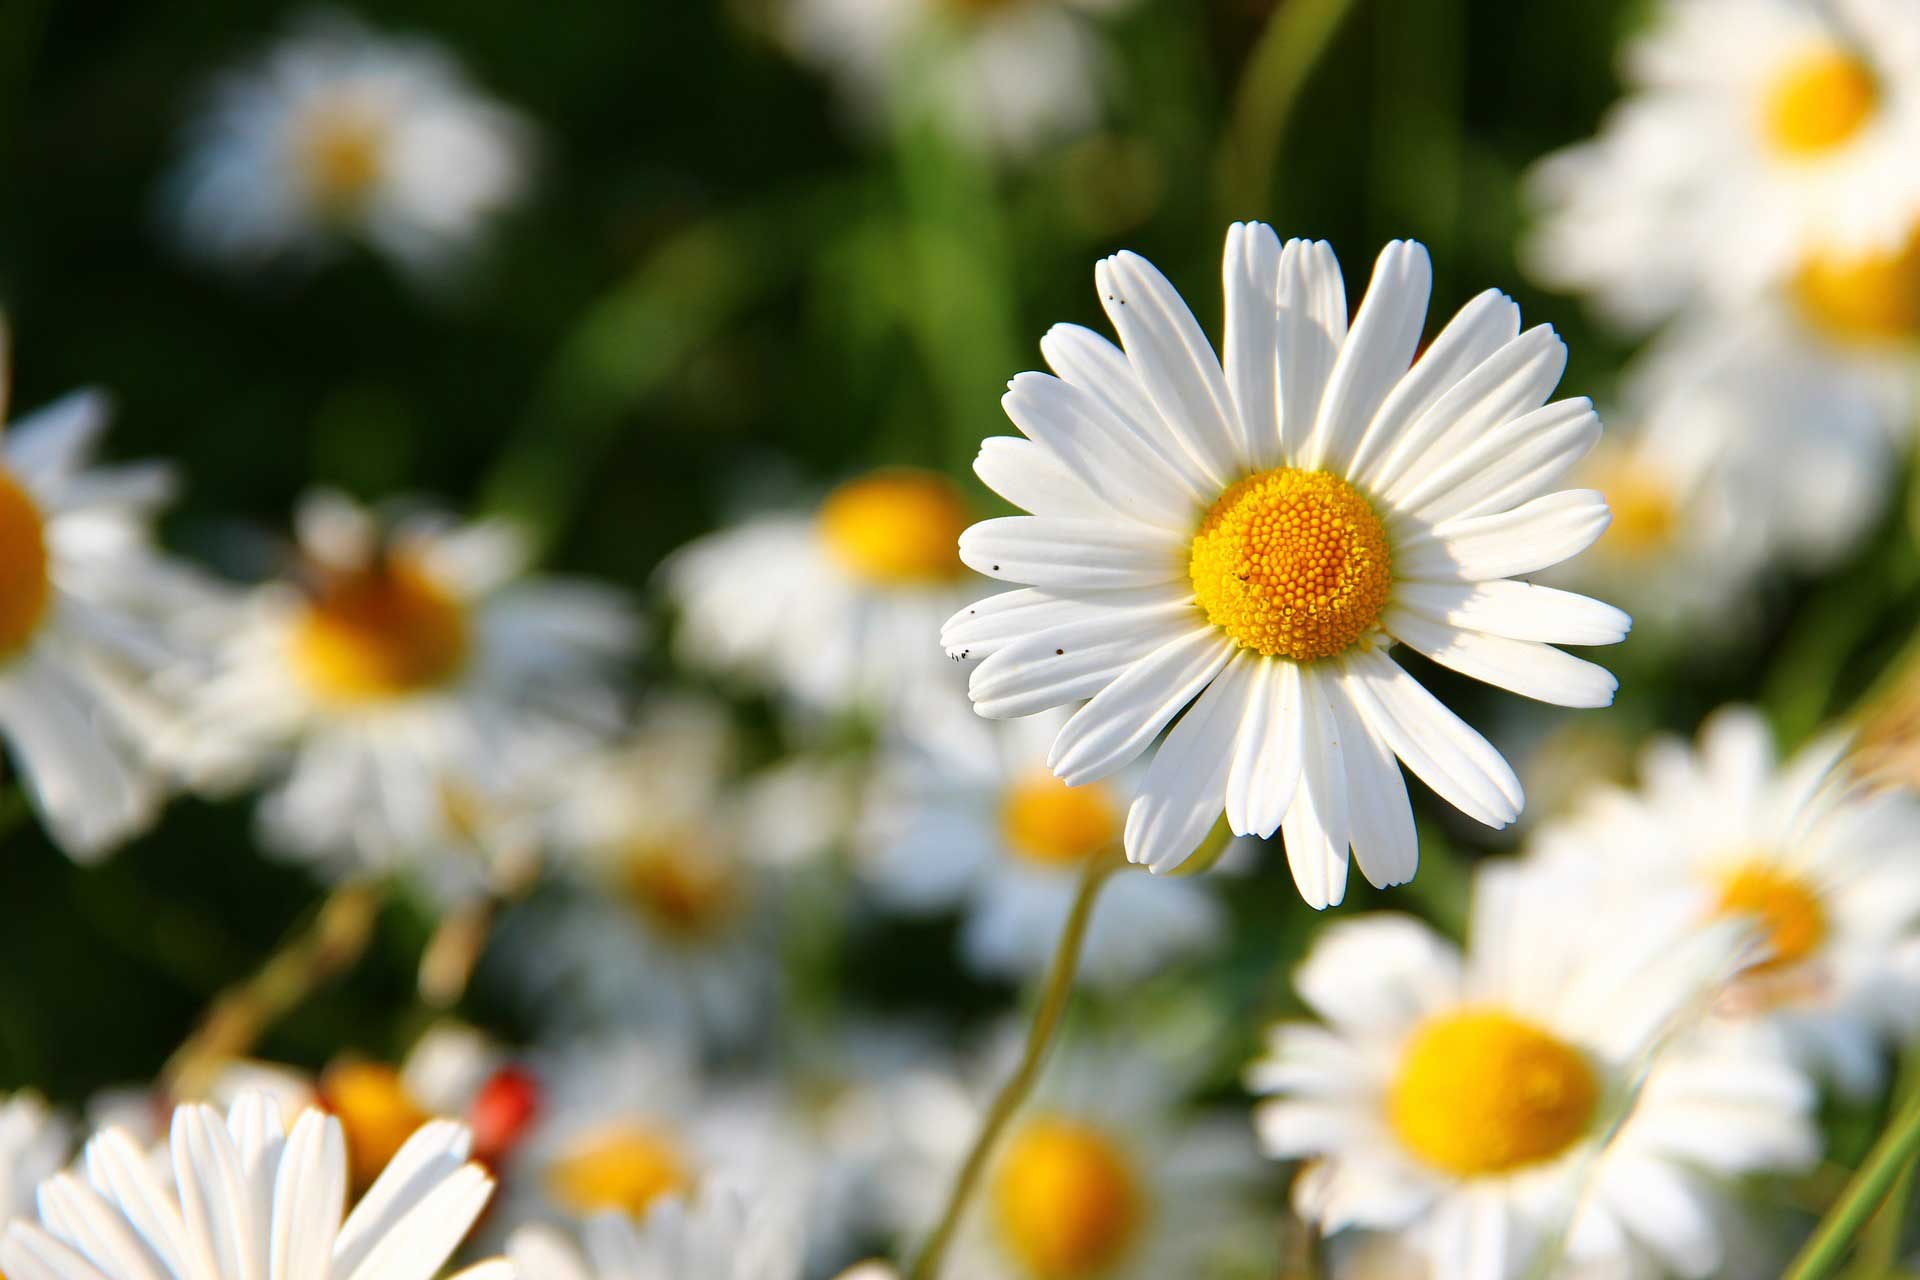 Learn about nature spring flowers daisy flowers learn about nature spring flowers daisy flowers thumbnail izmirmasajfo